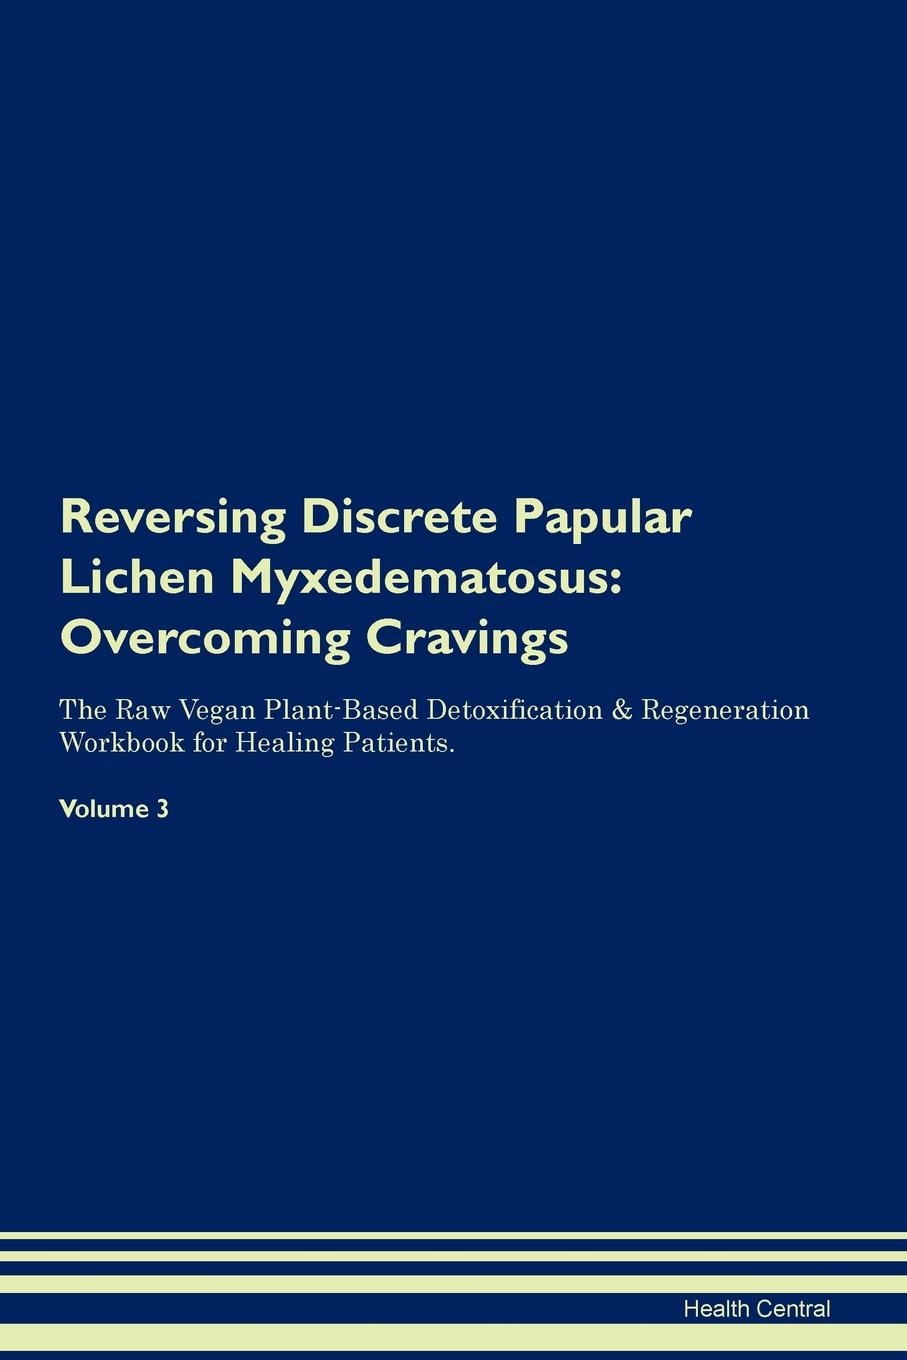 Фото - Health Central Reversing Discrete Papular Lichen Myxedematosus. Overcoming Cravings The Raw Vegan Plant-Based Detoxification & Regeneration Workbook for Healing Patients. Volume 3 health central reversing lichen sclerosus overcoming cravings the raw vegan plant based detoxification regeneration workbook for healing patients volume 3